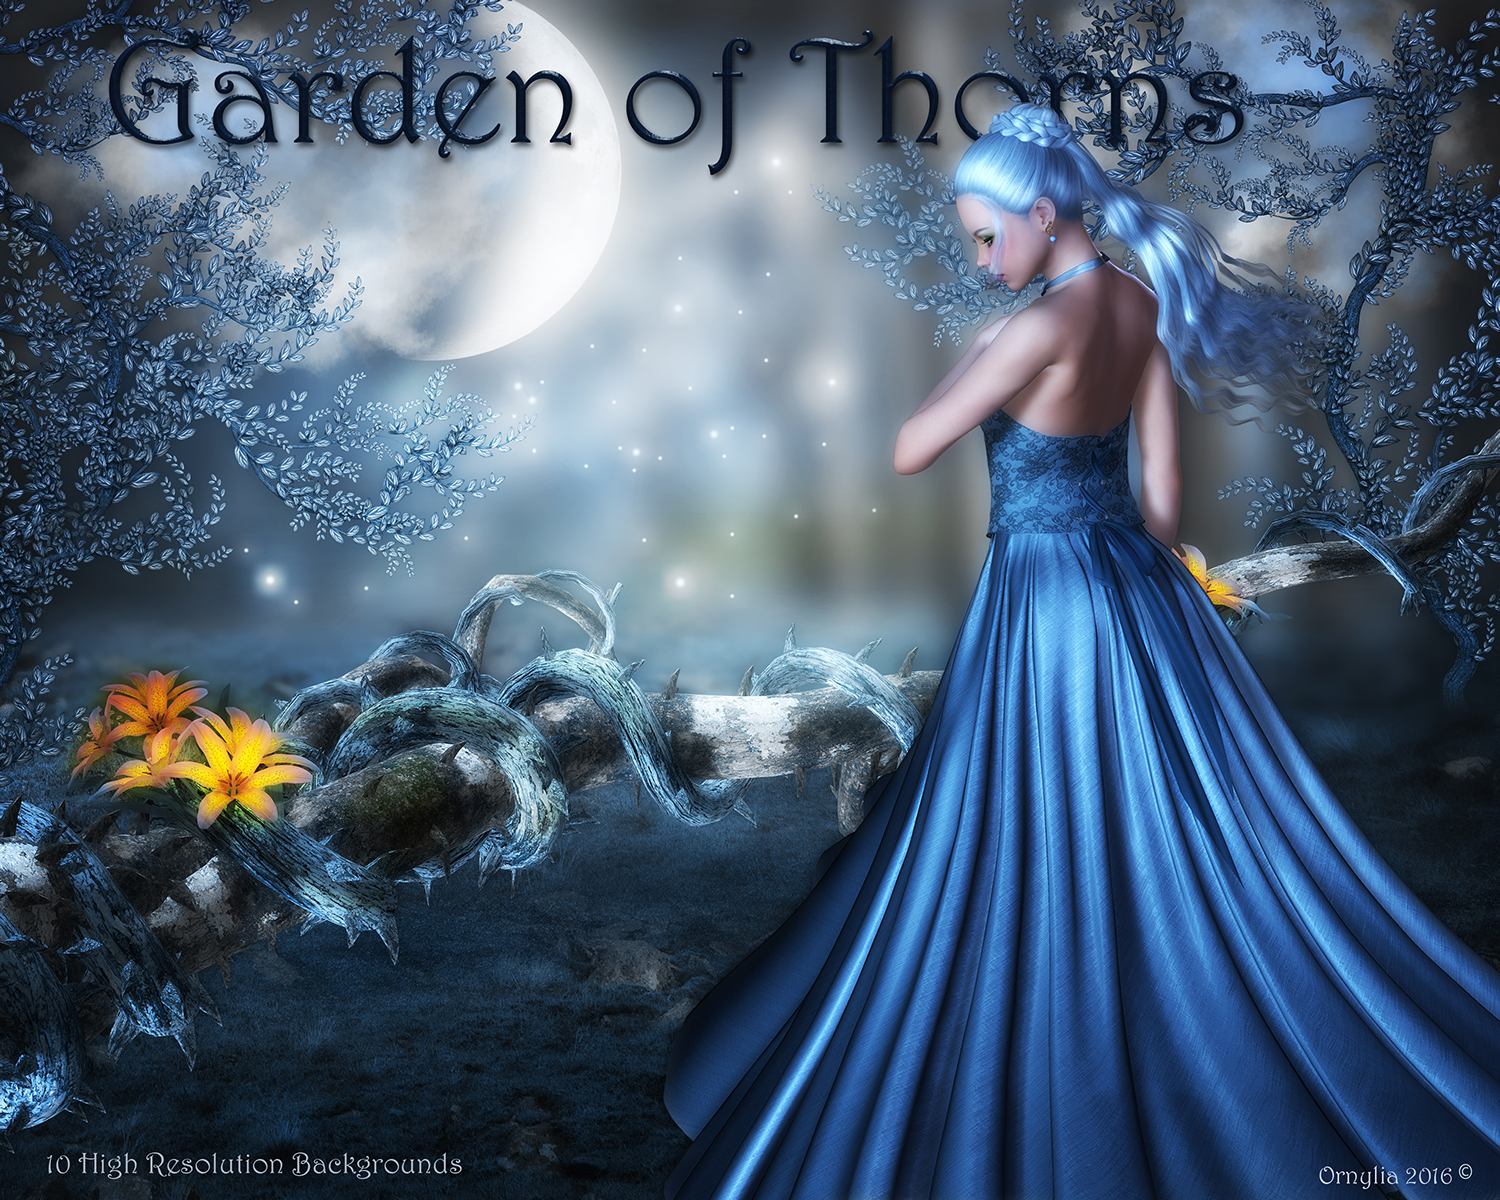 Gardens of Thorns